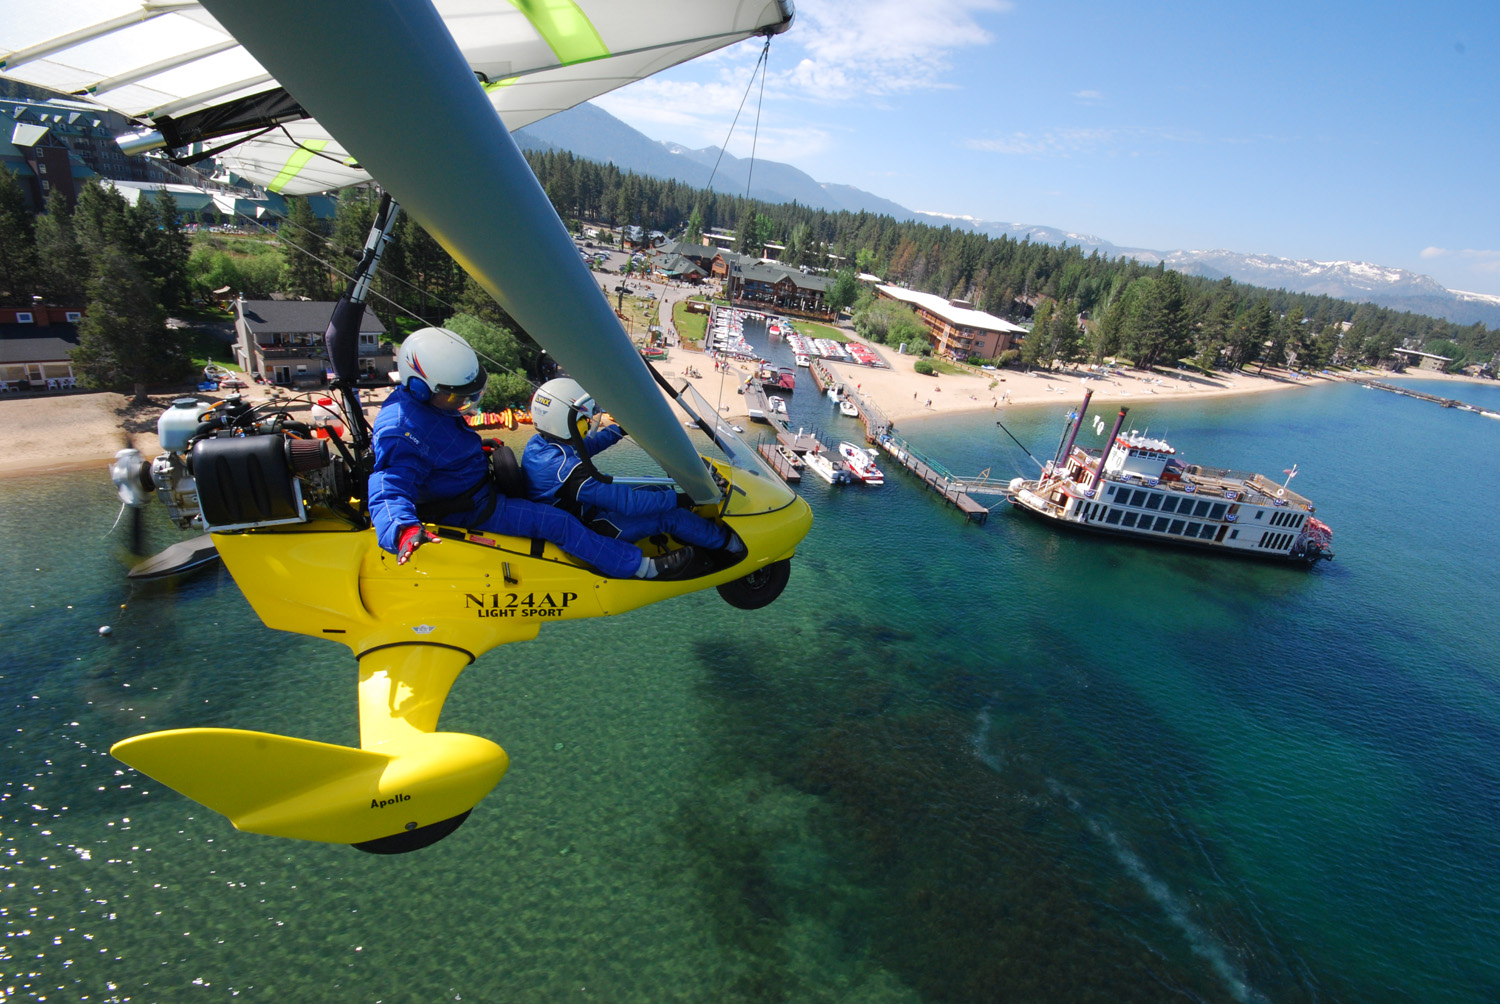 Flying powered hang glider above Lake Tahoe Paddlewheeler - Hang-Gliding-Tahoe